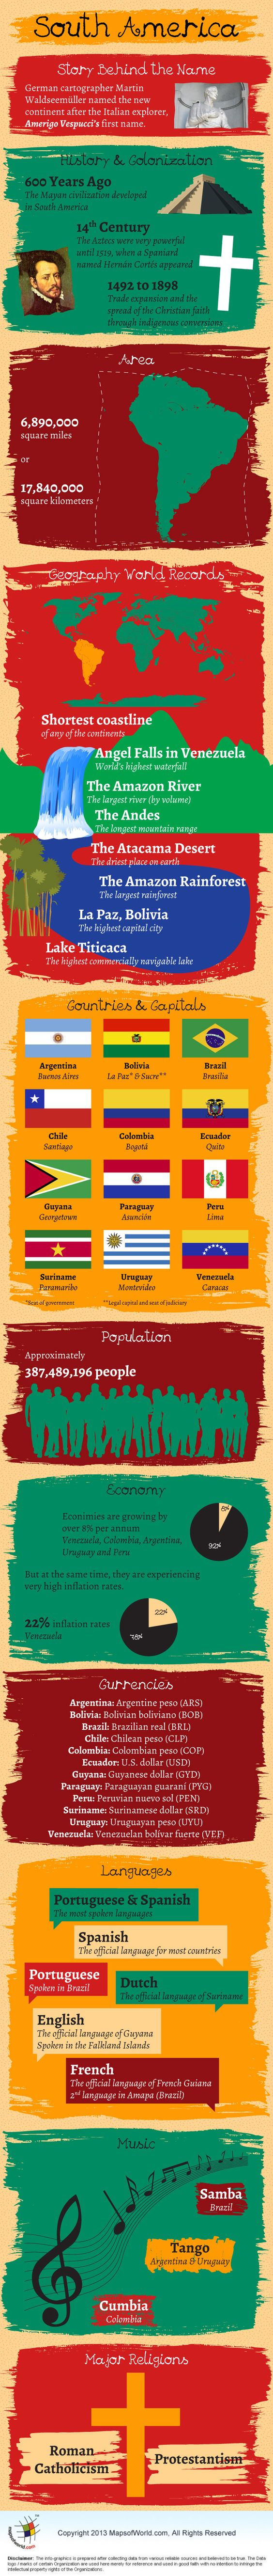 Geography | Tipsographic | More geography tips at http://www.tipsographic.com/